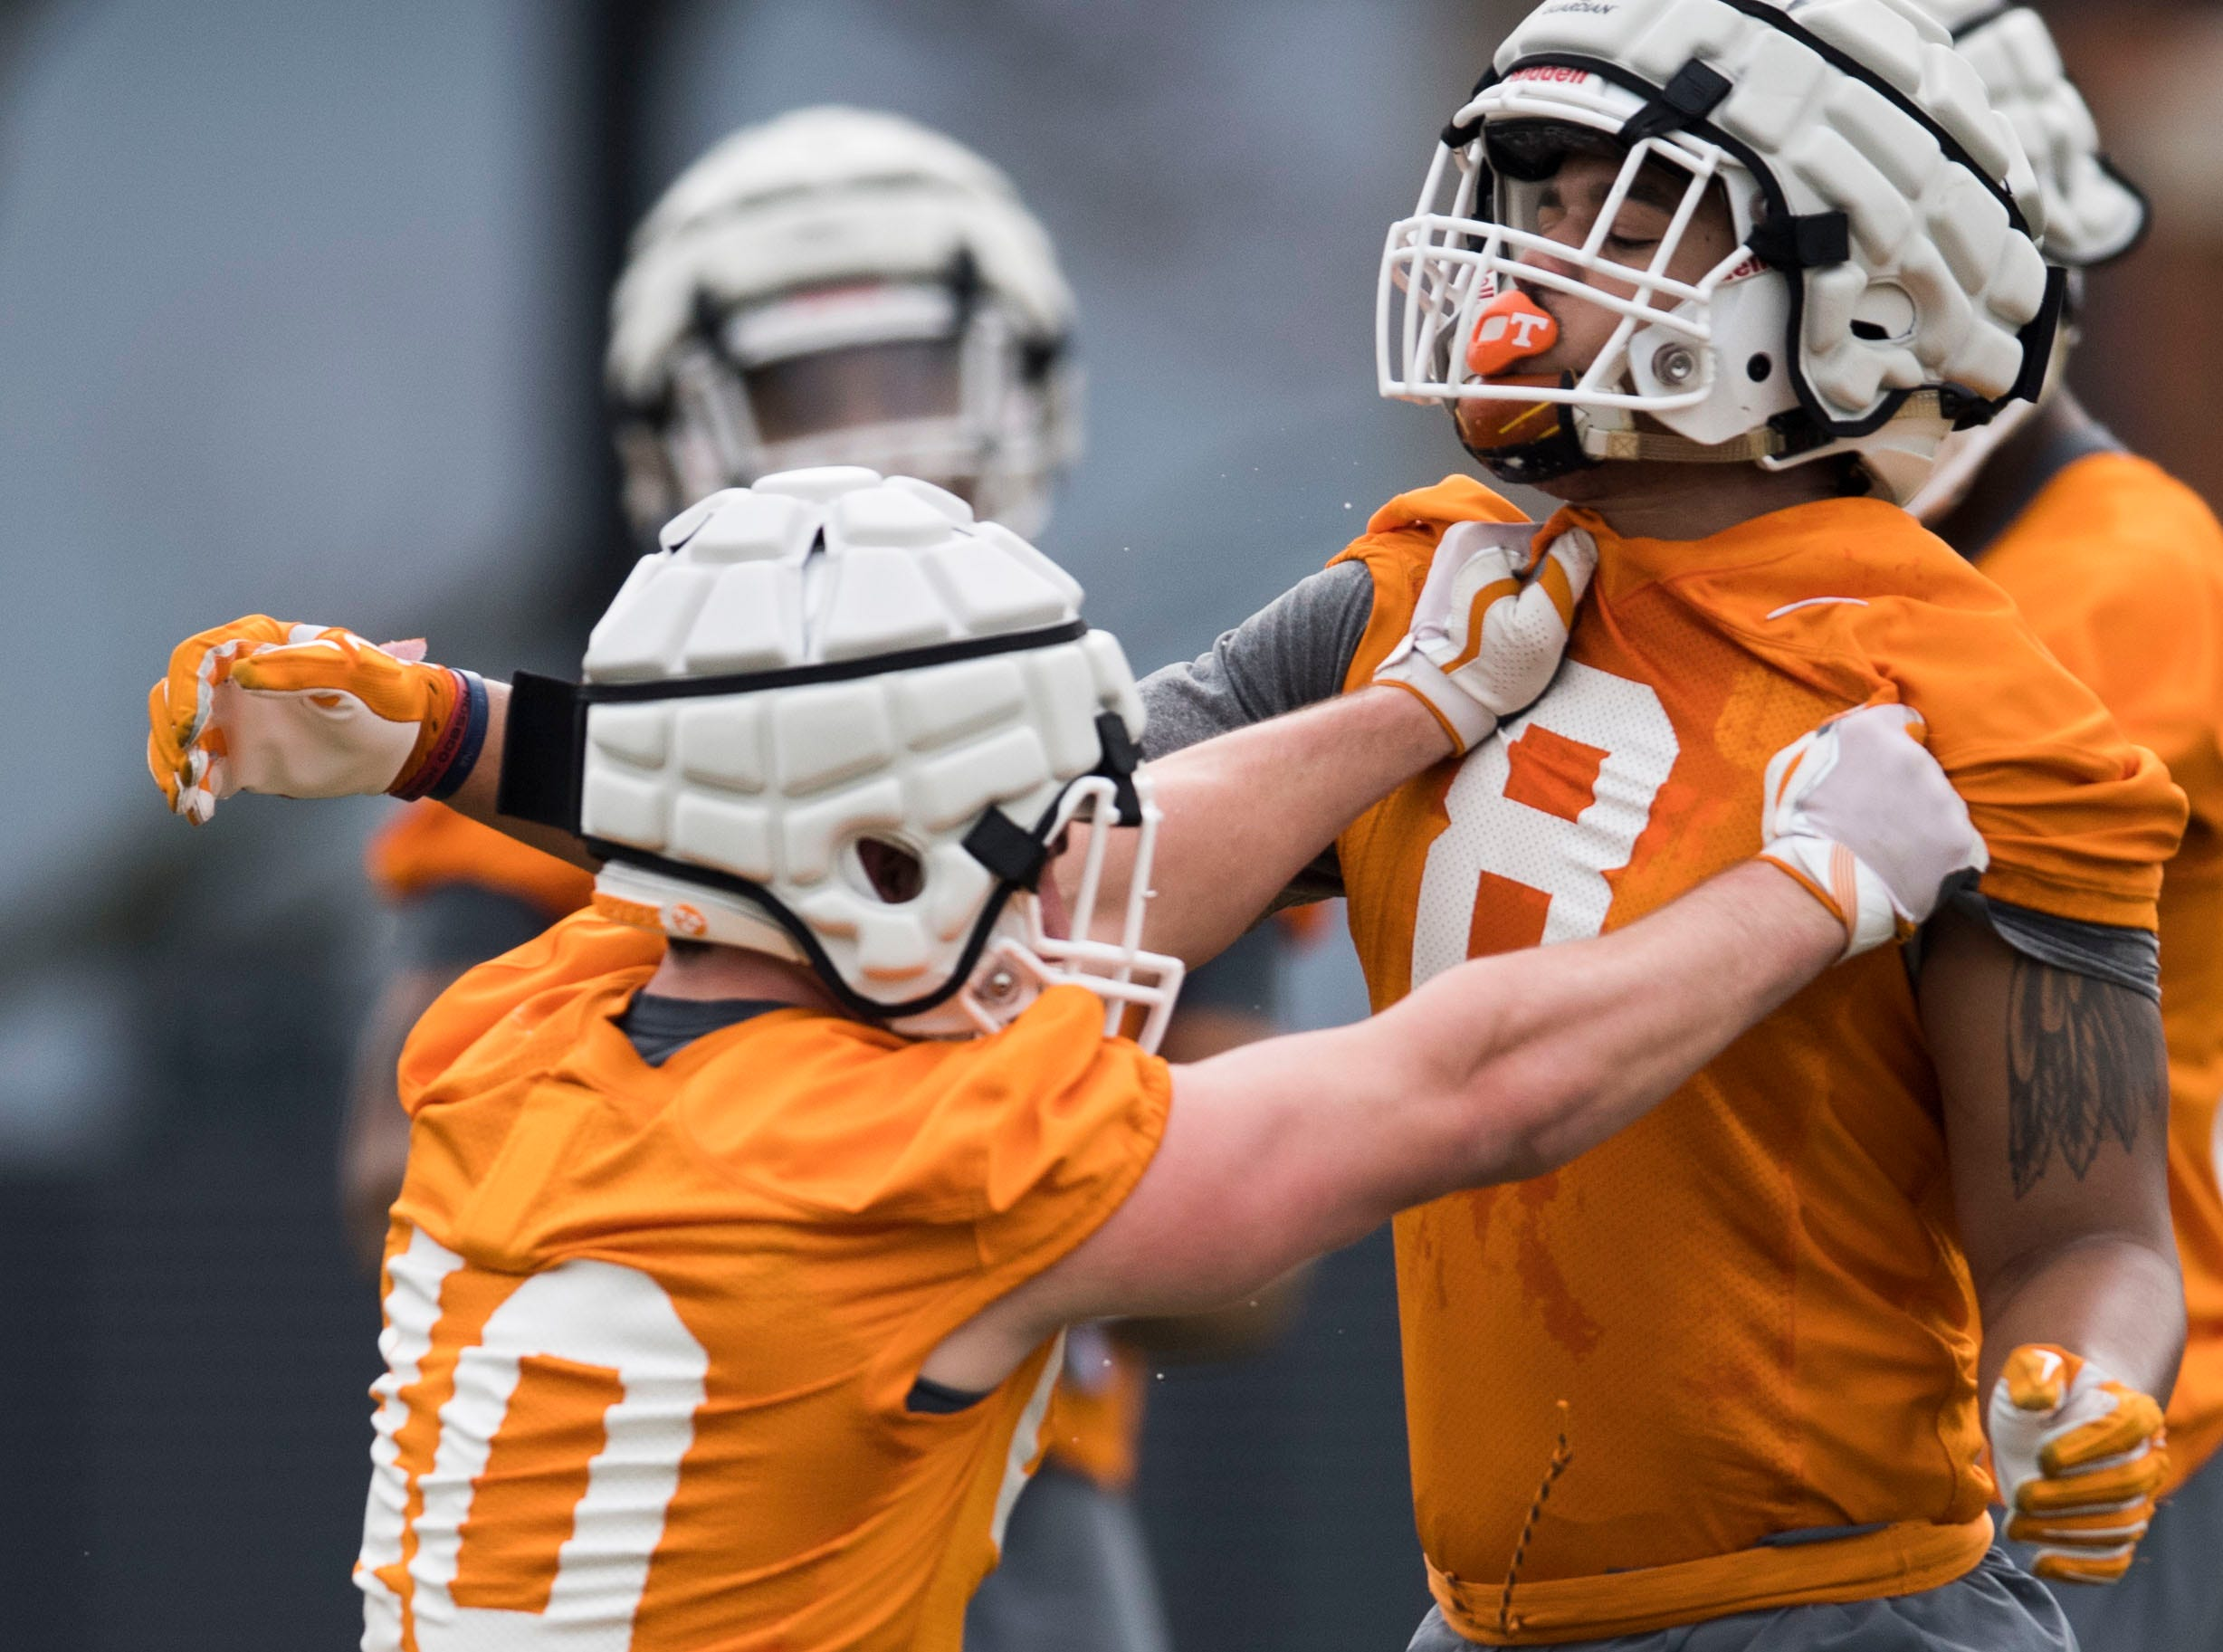 Tennessee's Matt Ballard (40) and Jordan Allen (8) participate in a drill during a Tennessee Vols football spring practice Saturday, March 9, 2019.